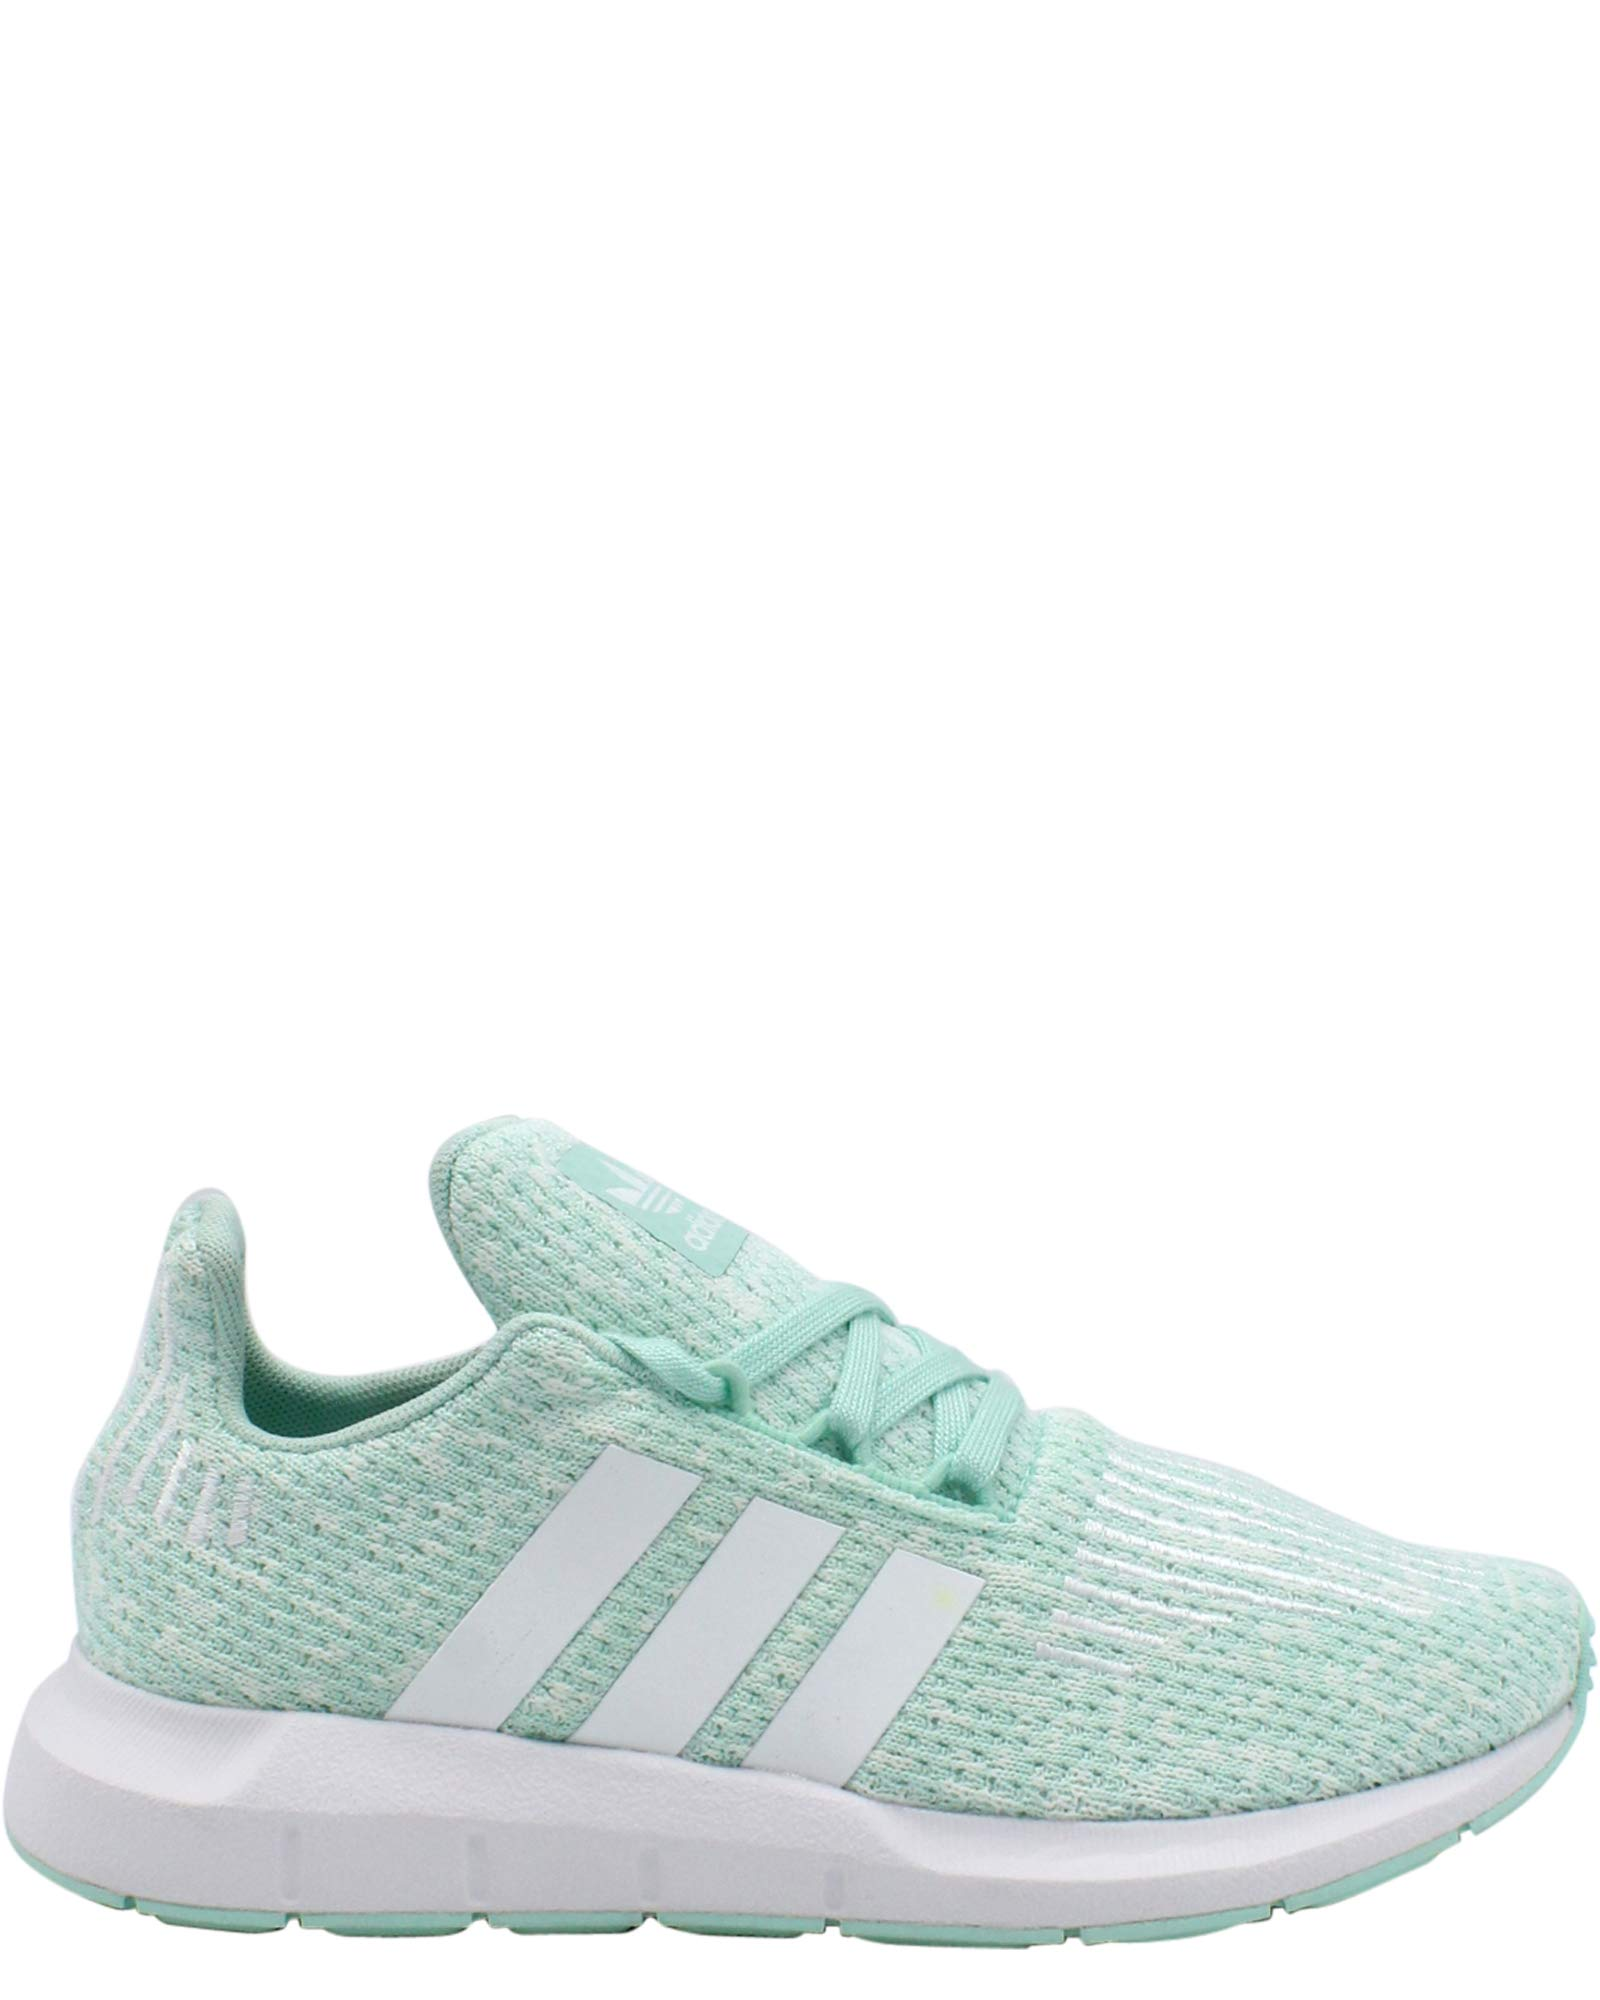 adidas Originals Swift Running Shoe Clear MintWhiteaero Green 2 M US Little Kid